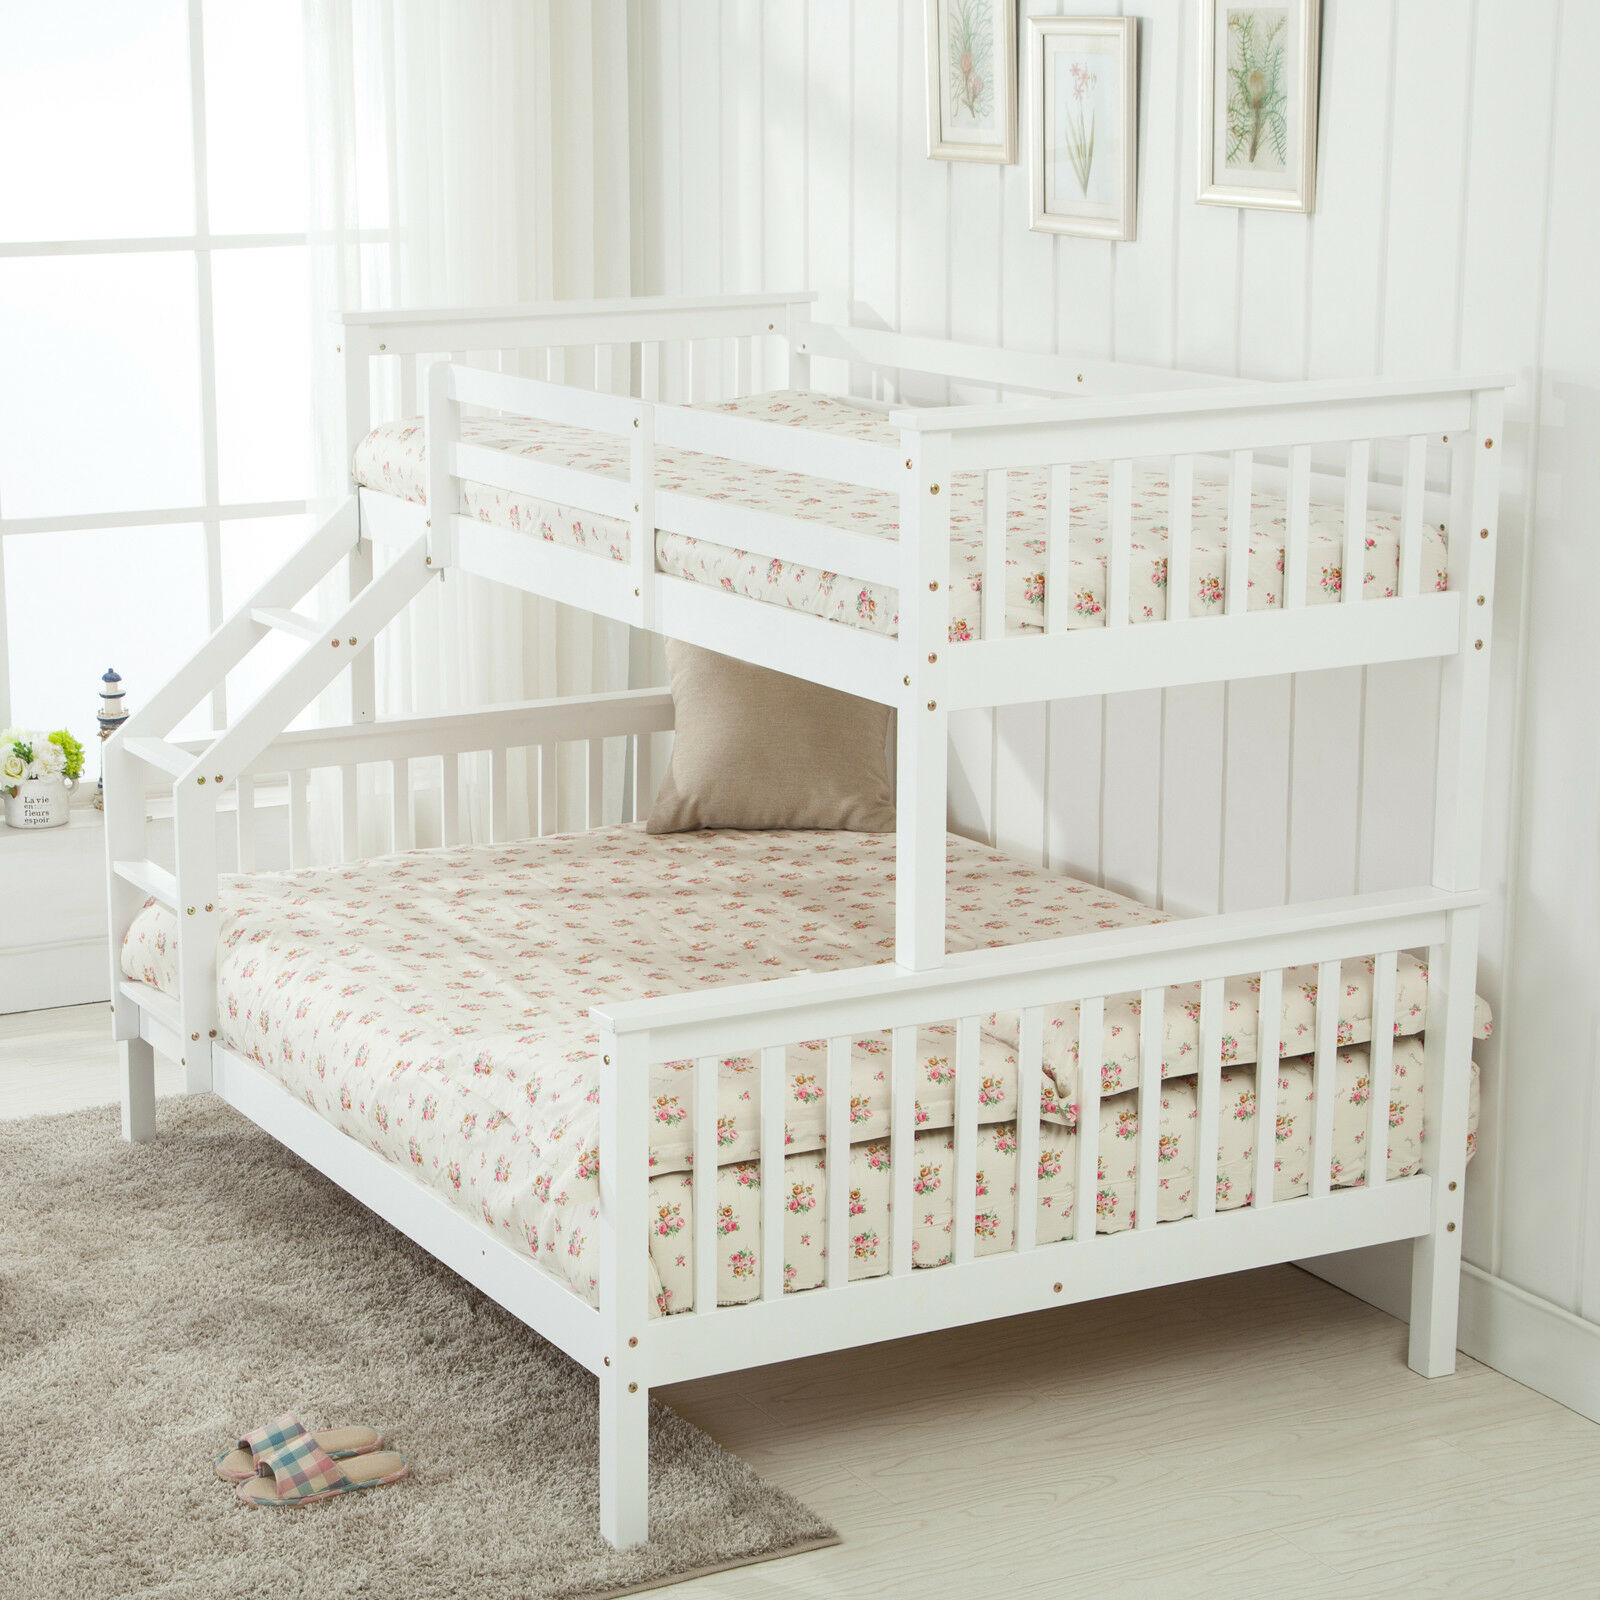 White Triple Sleeper Pine Wood Bunk Bed Frame 3ft Single 4ft6 Double